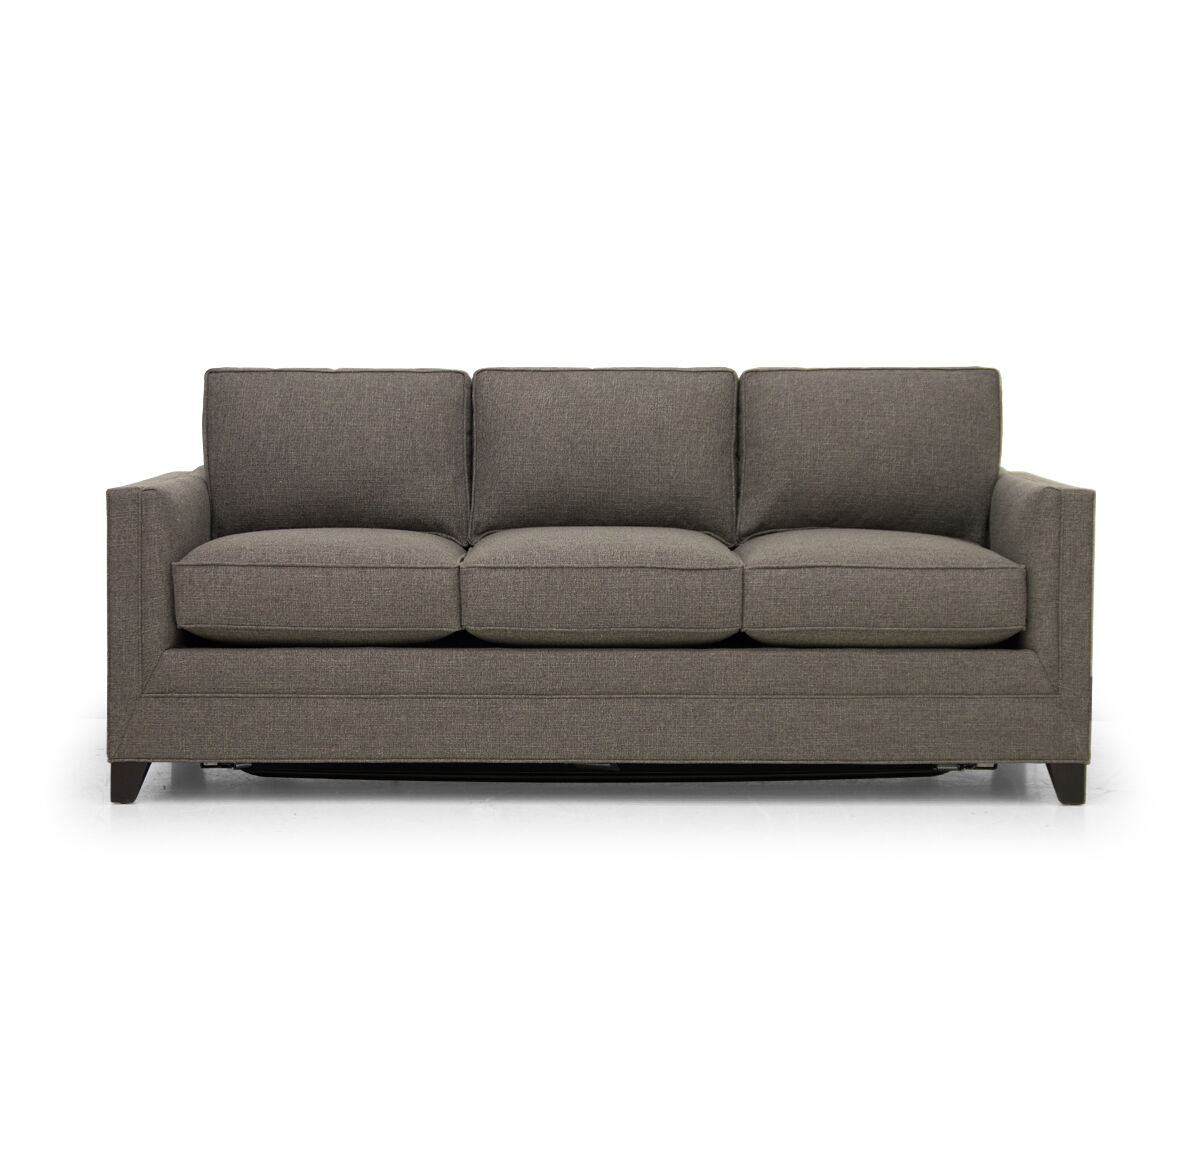 REESE SUPER LUXE QUEEN SLEEPER SOFA